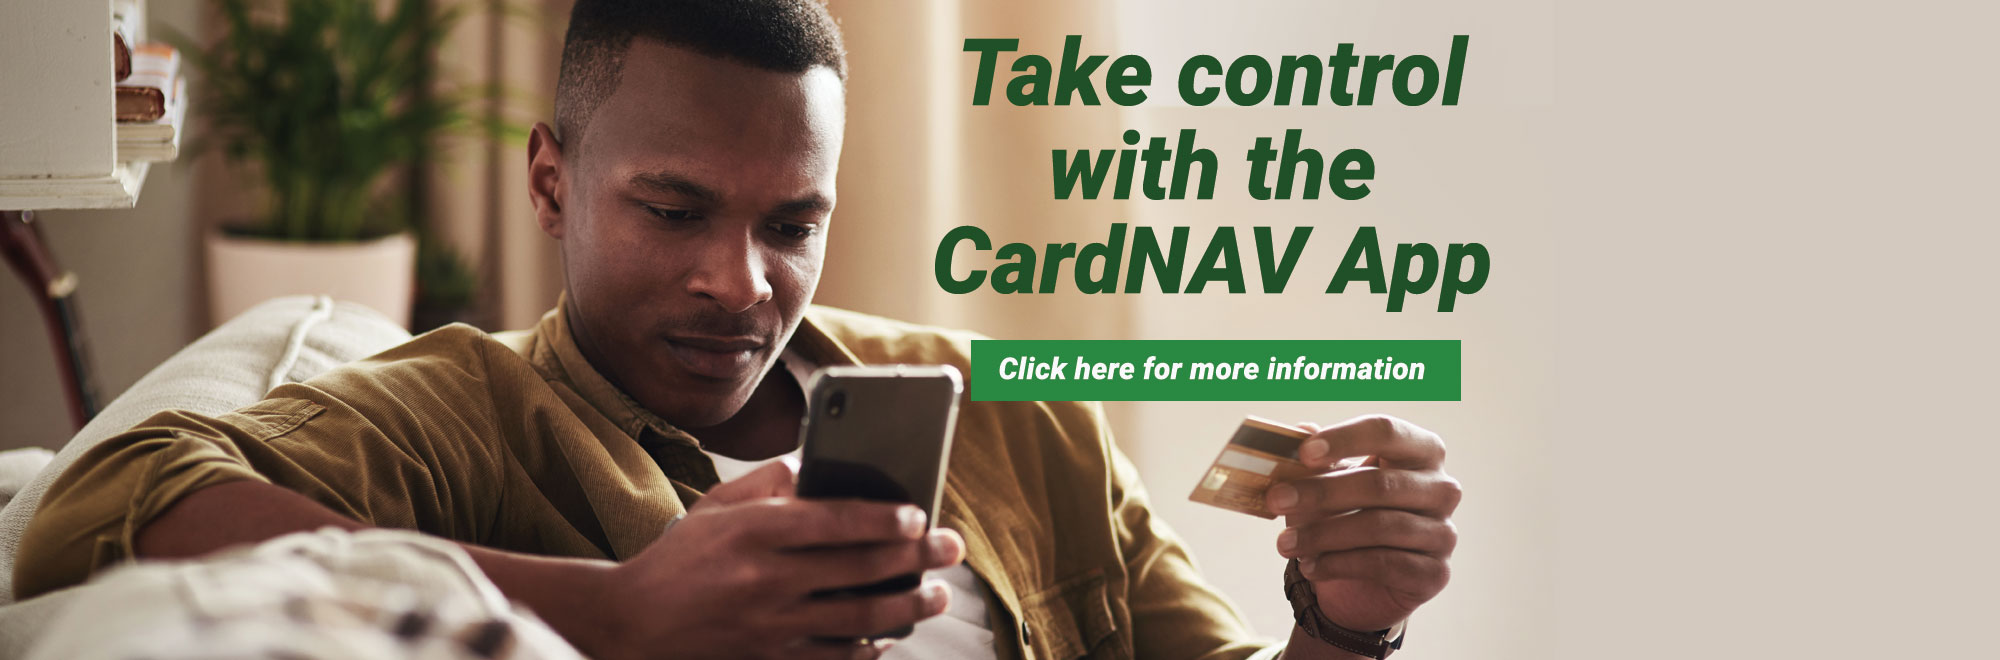 Take Control with Card Nav. Click to learn more